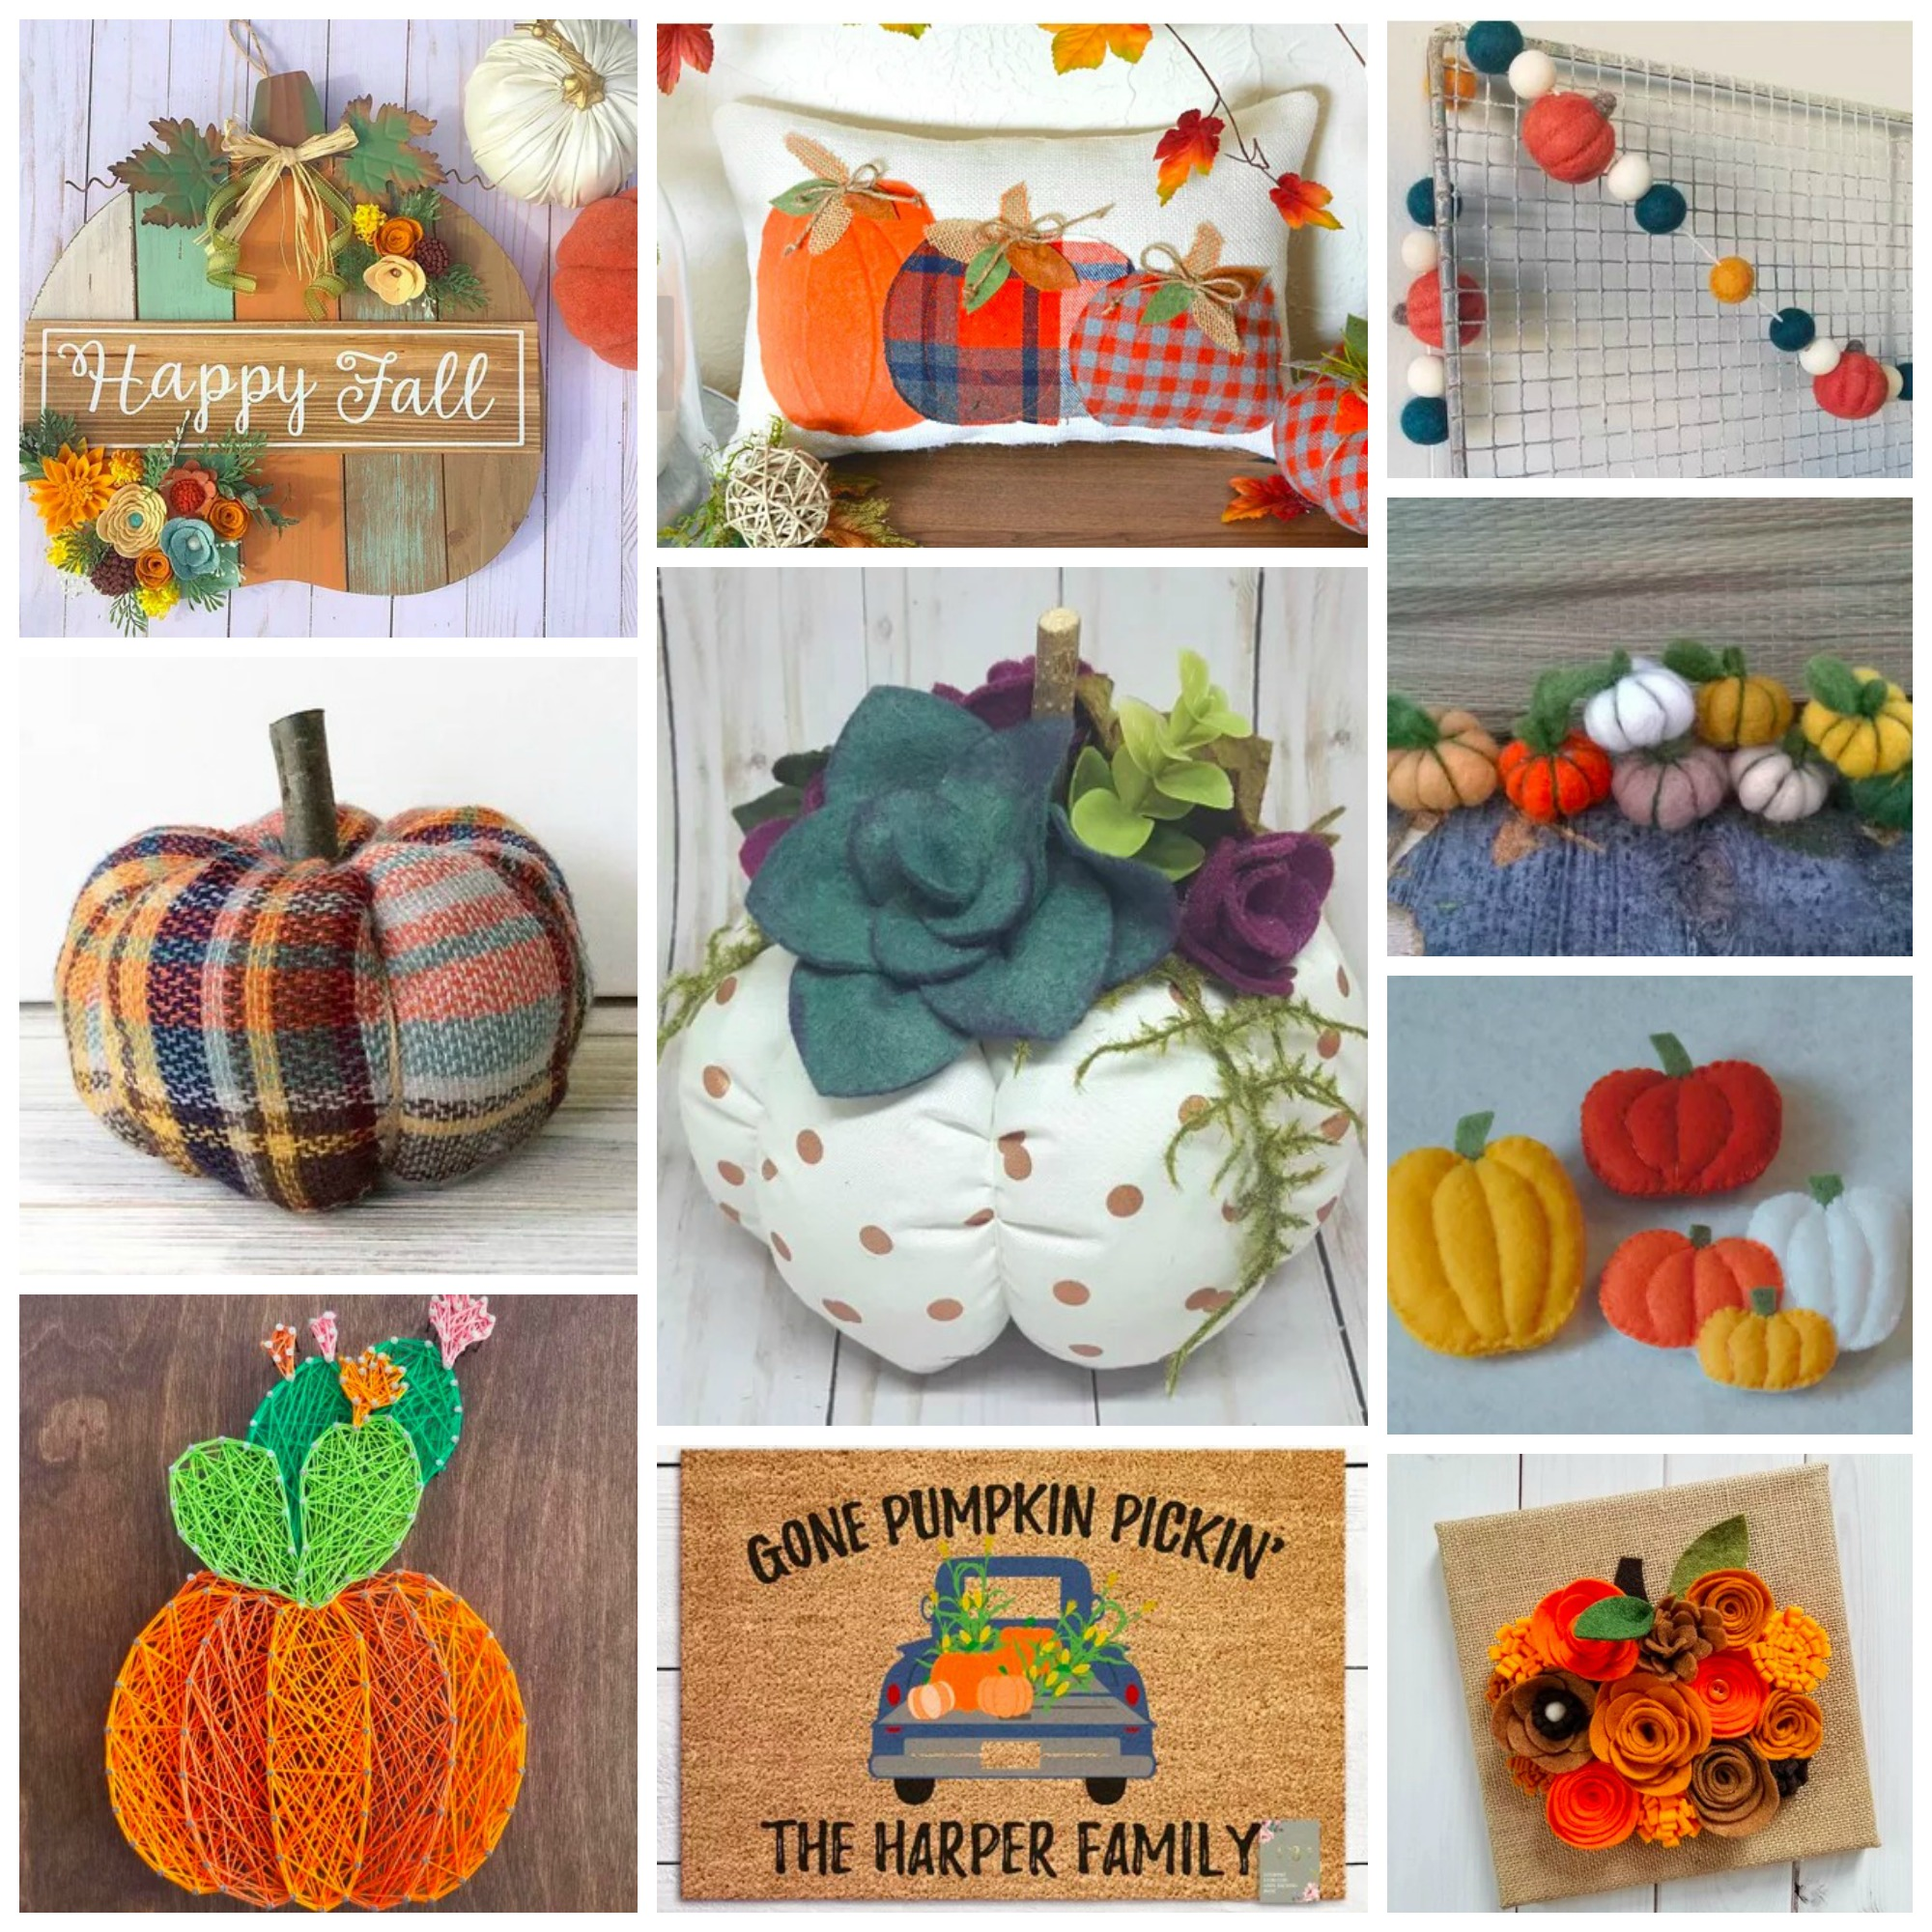 Top 10: Colorful and Unique Autumn Pumpkin Decor For Your Home This Season